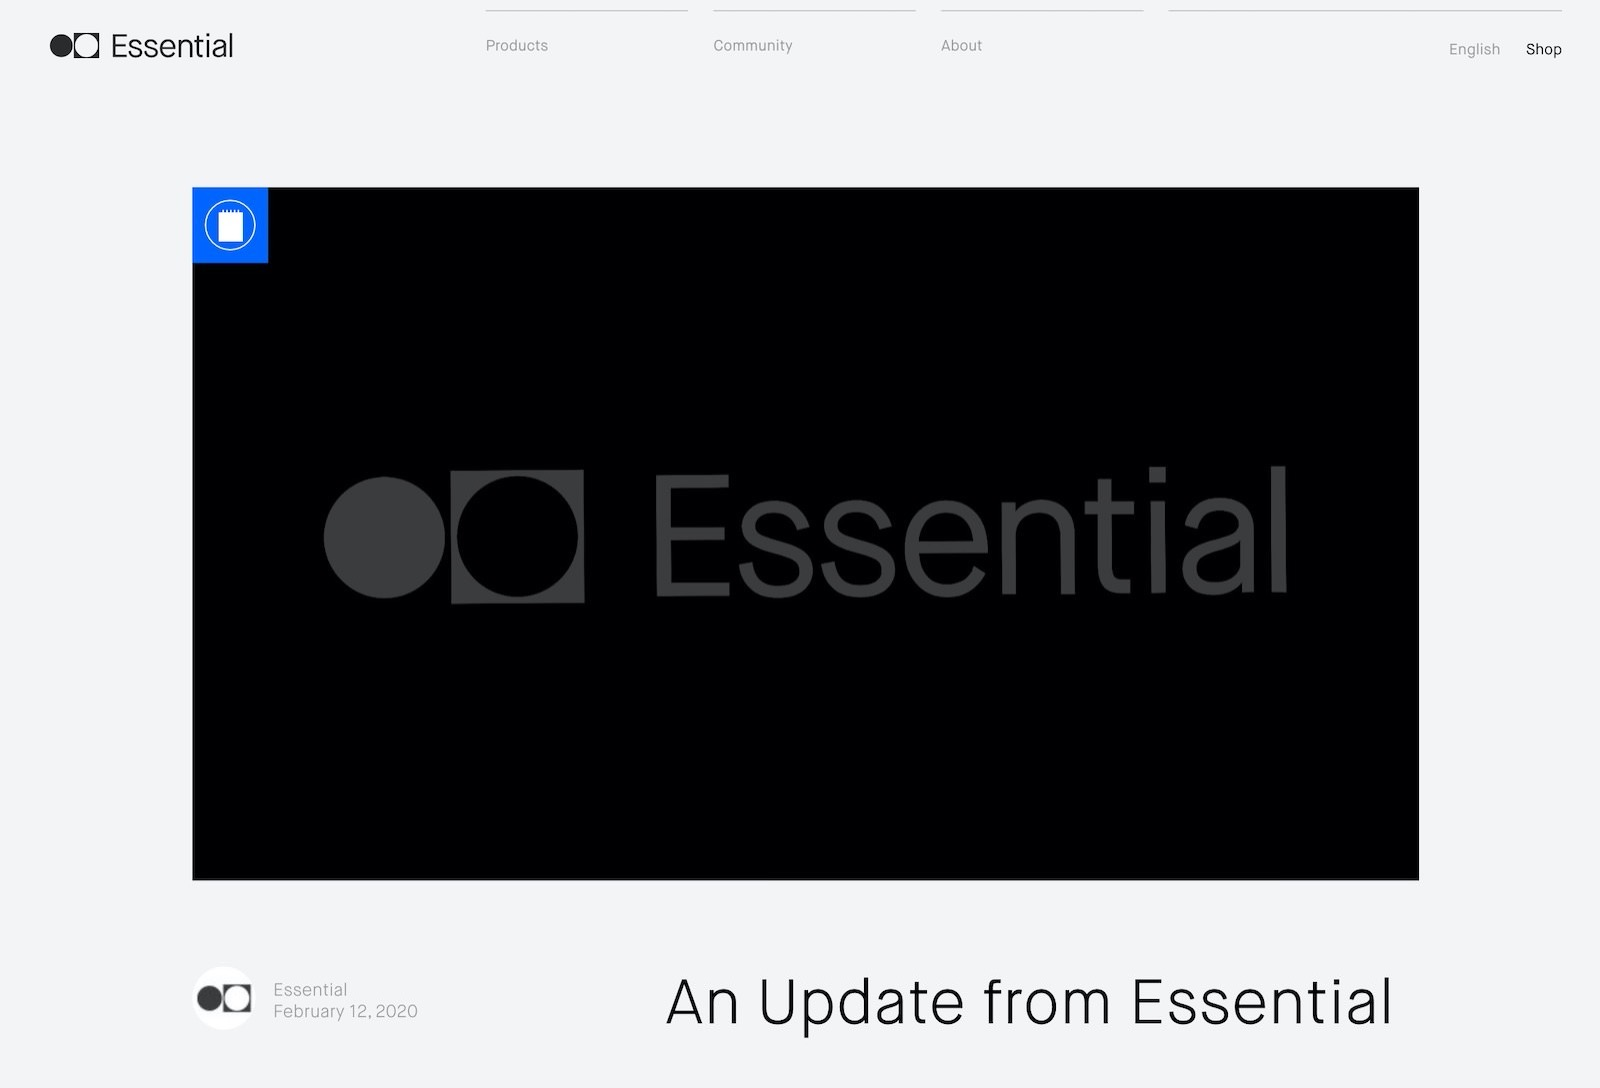 Essential is shutting down